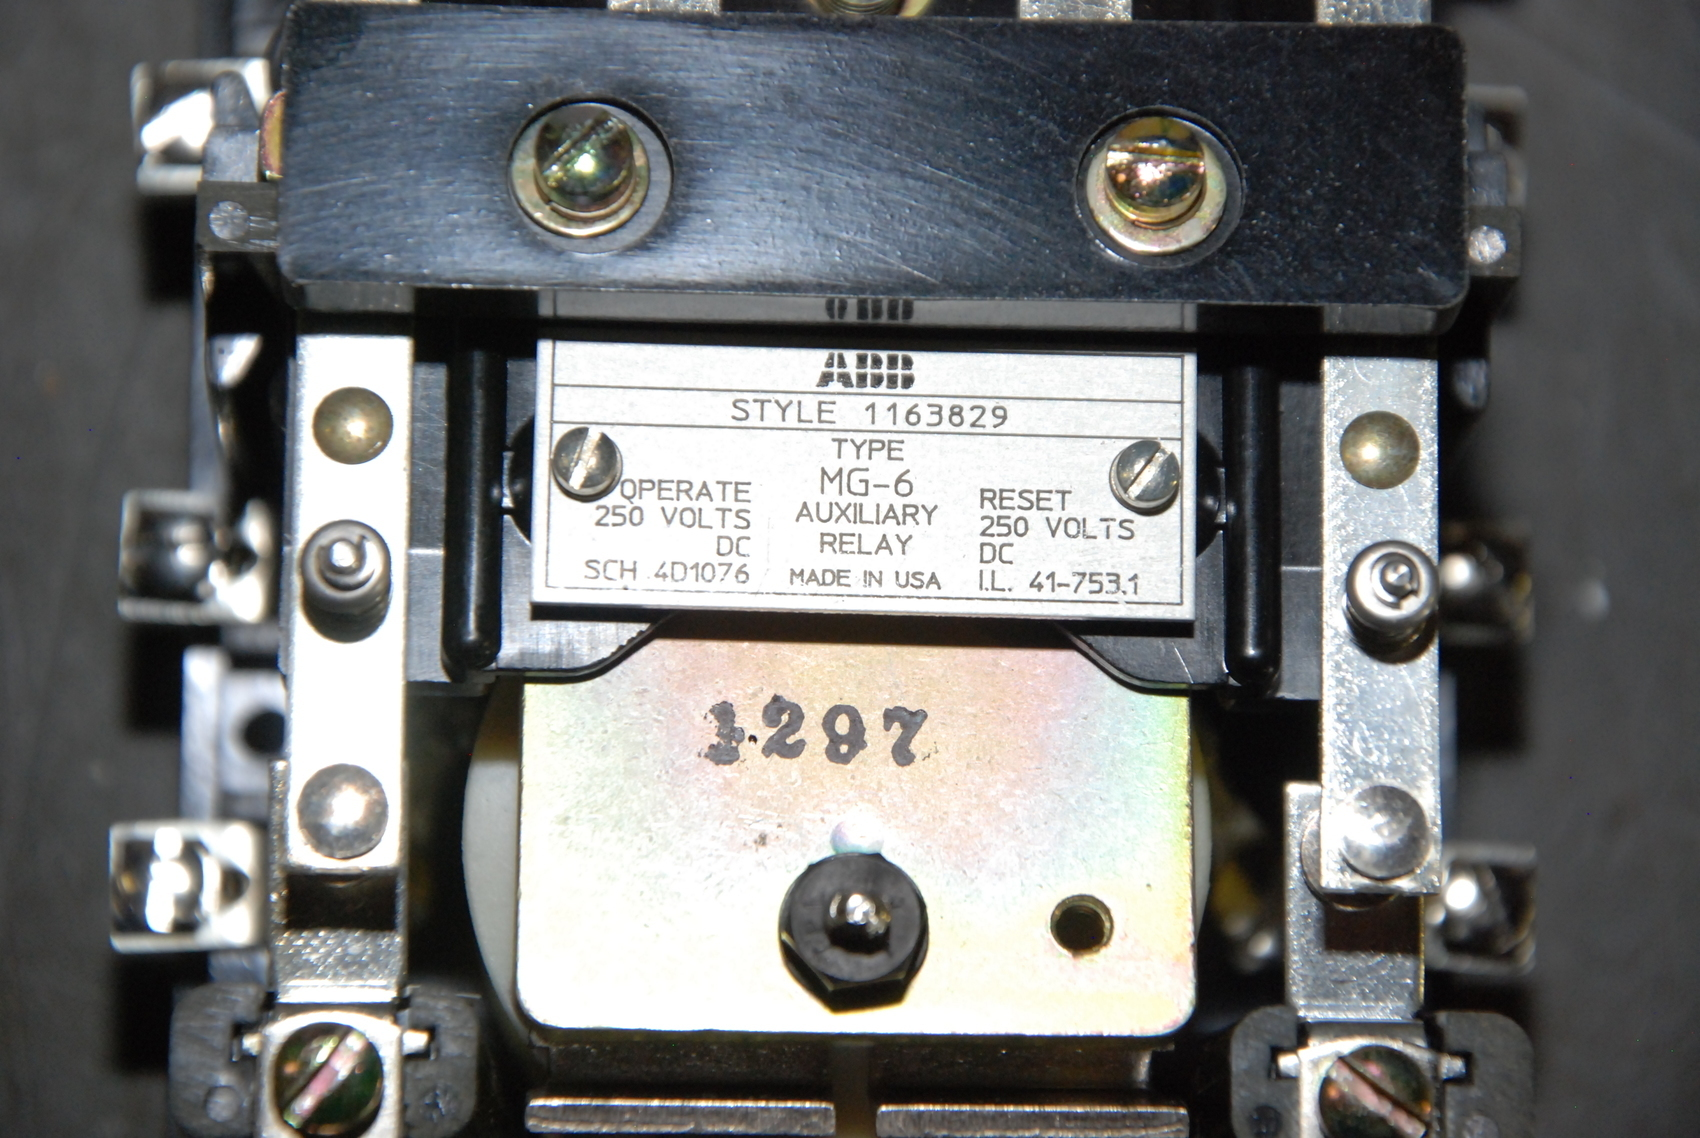 New Abb Mg 6 Auxiliary Relay Inv22779 Ebay Electromagnetic Inv 22779